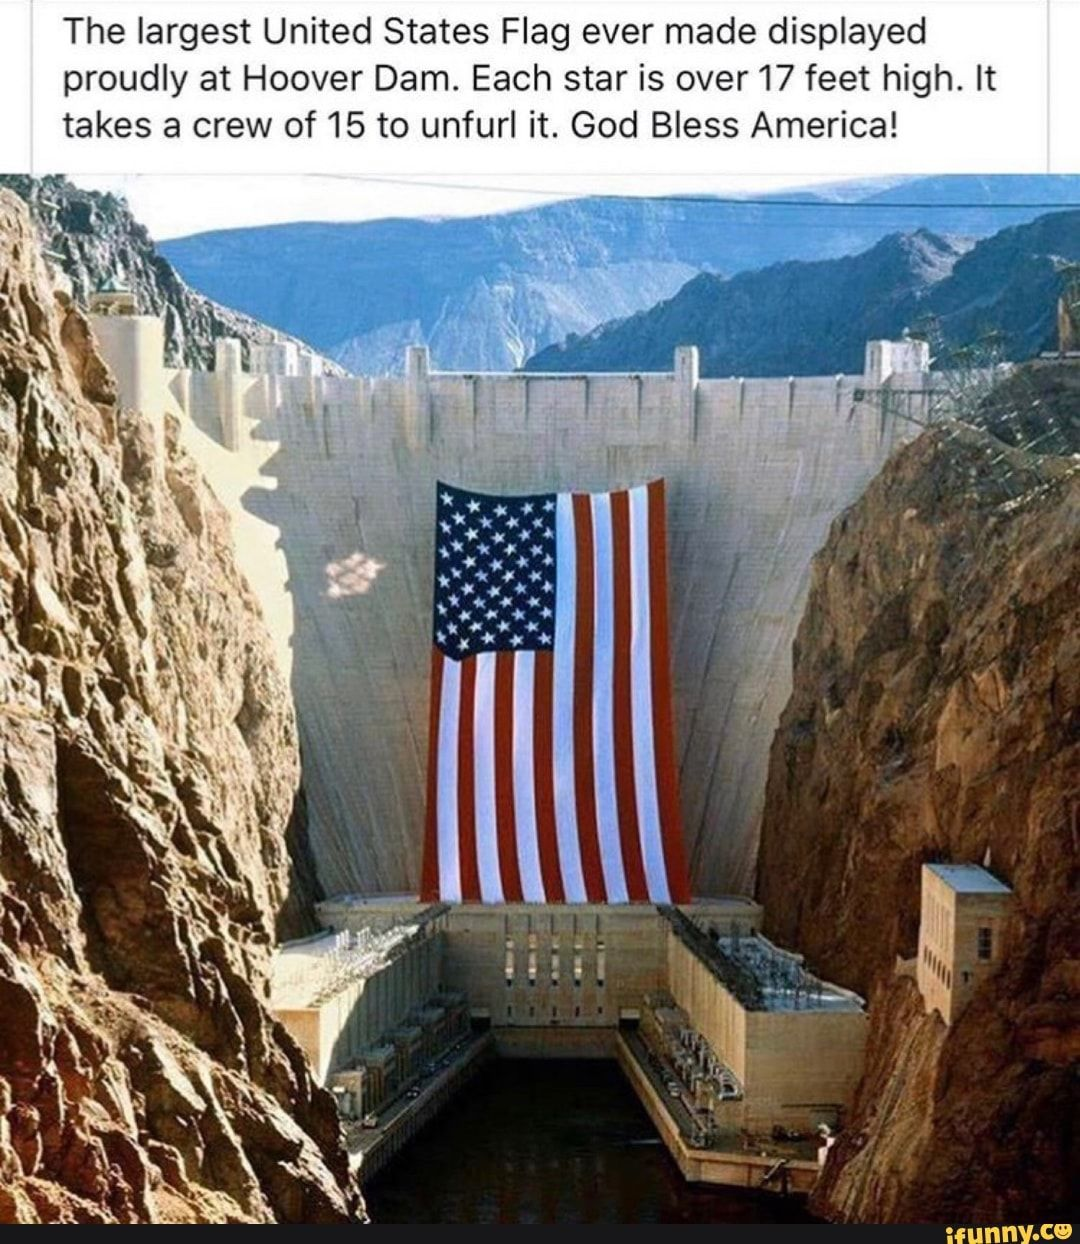 The Largest United States Flag Ever Made Displayed Proudly At Hoover Dam Each Star Is Over 17 Feet High It Takes A Crew Of 15 To Unfurl It God Bless America In